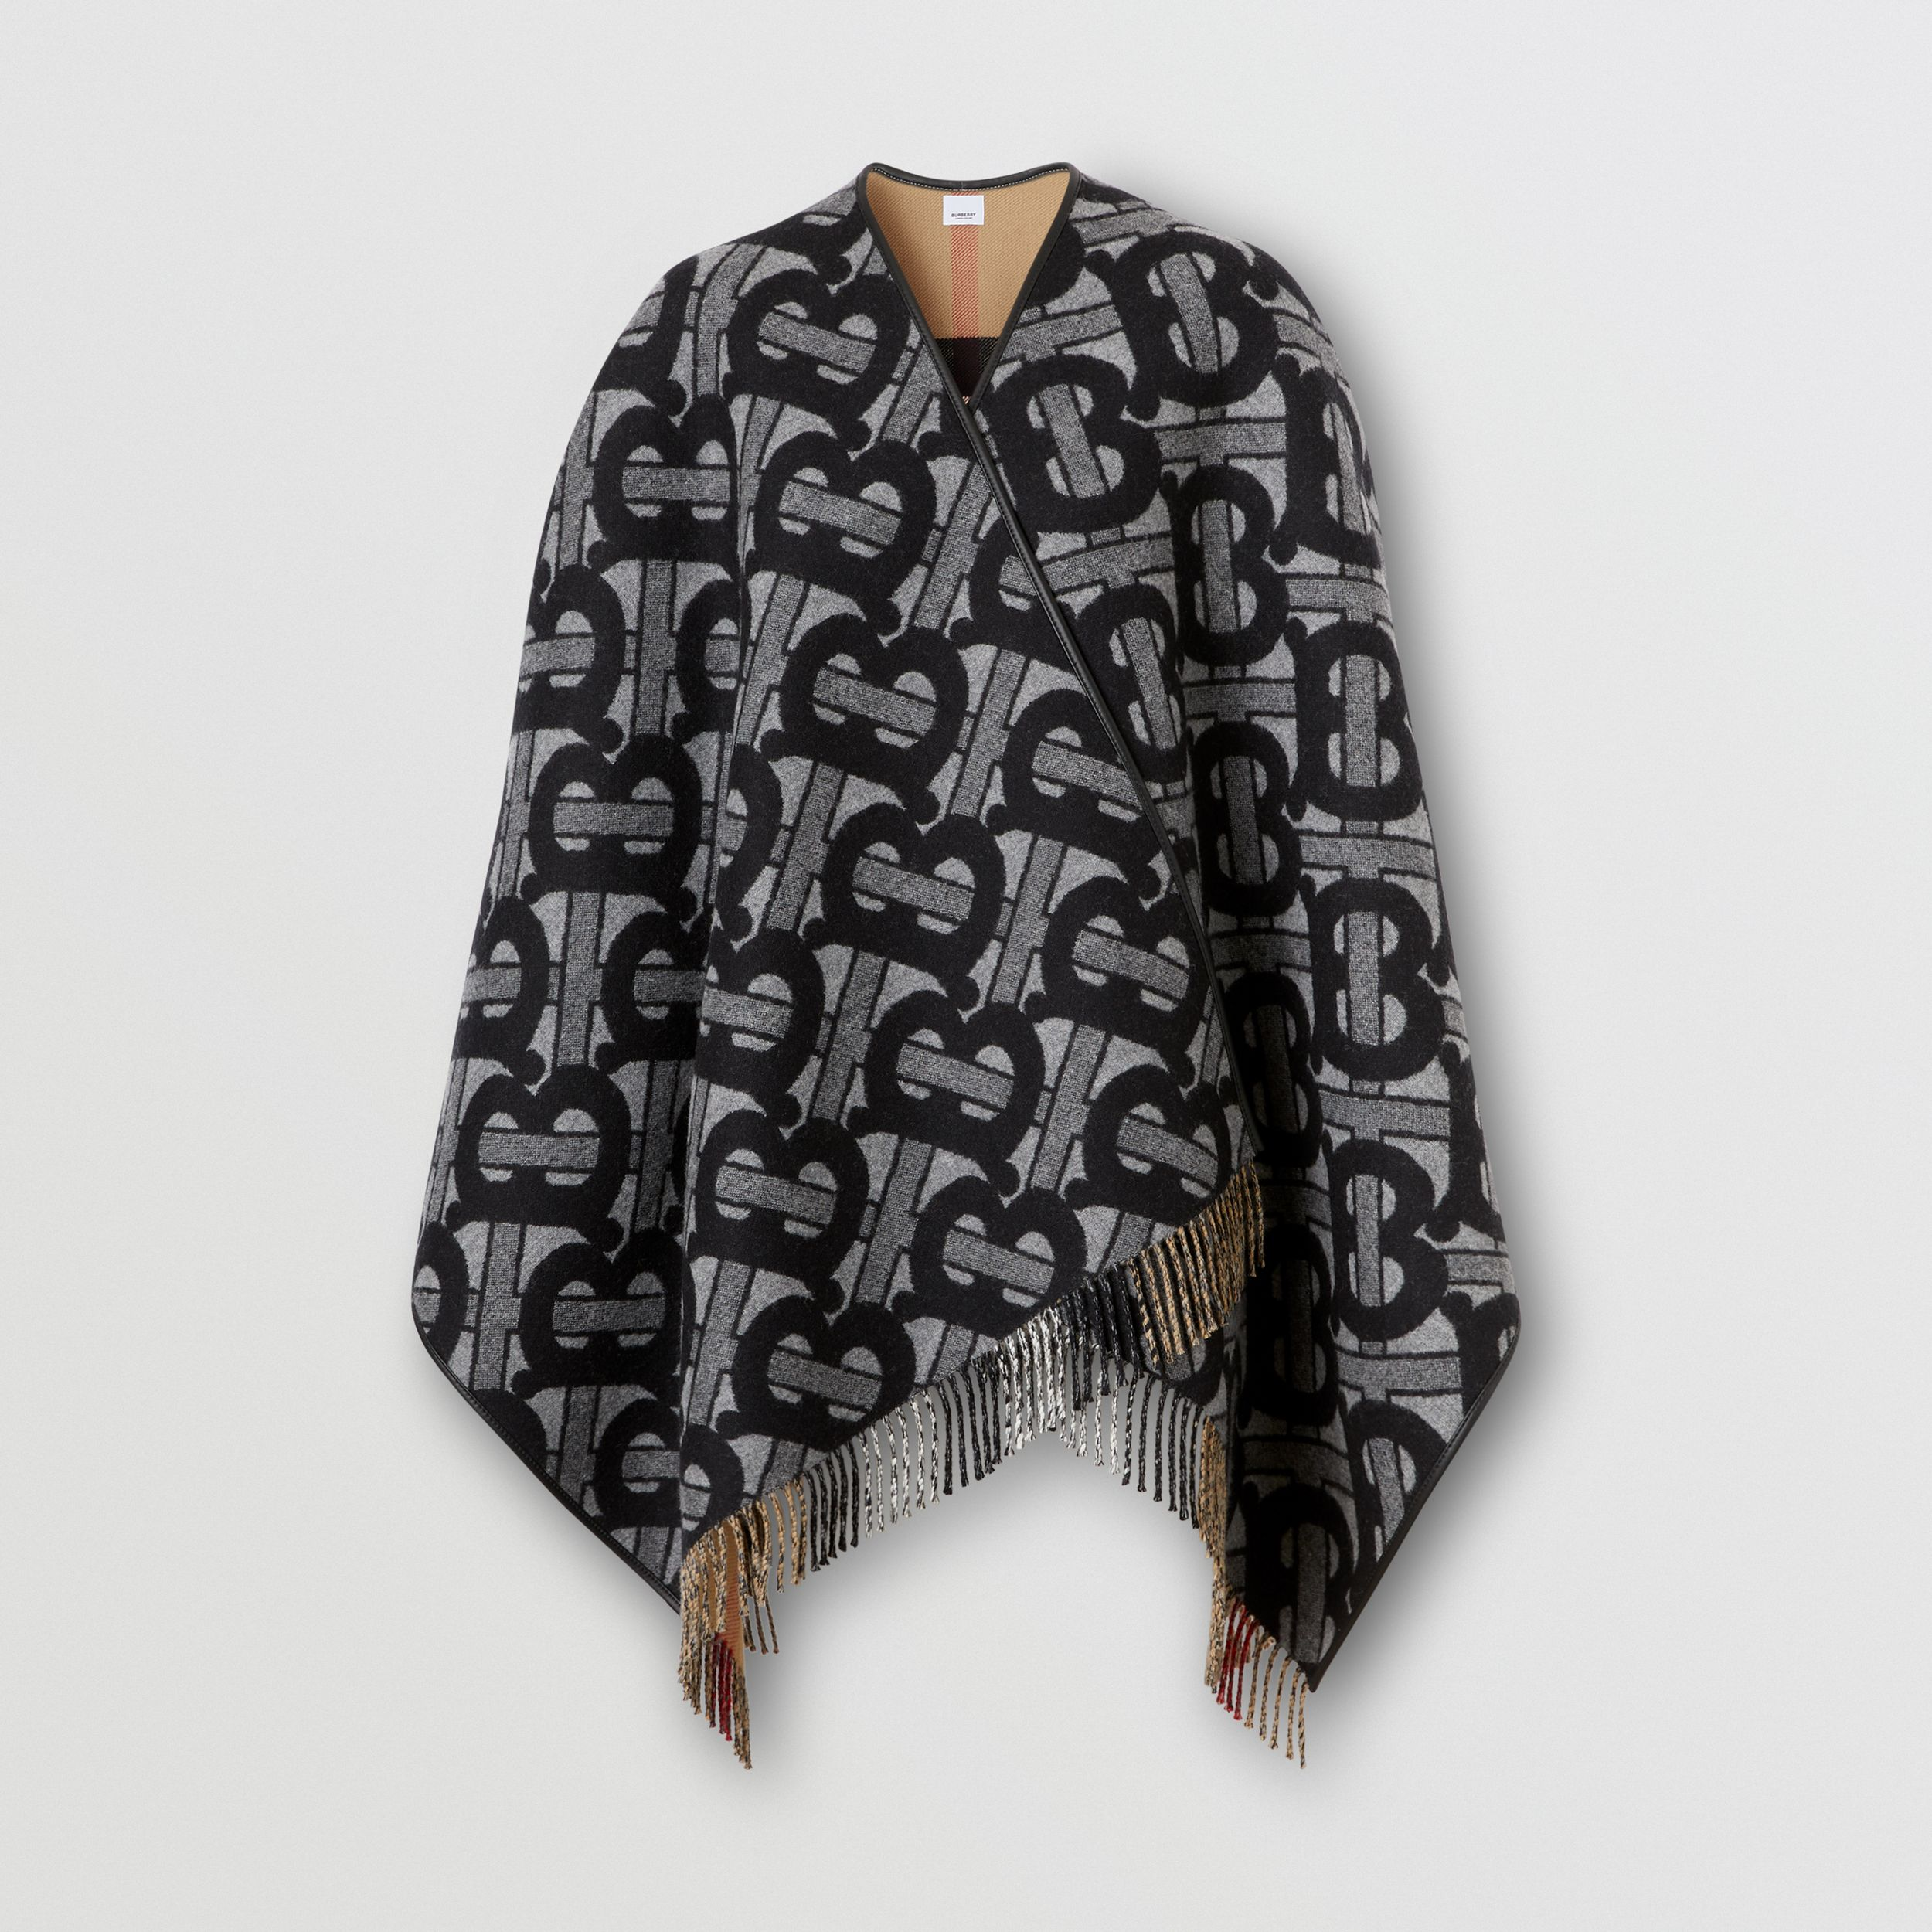 Monogram Merino Wool Cashmere Jacquard Cape in Graphite - Women | Burberry United Kingdom - 4